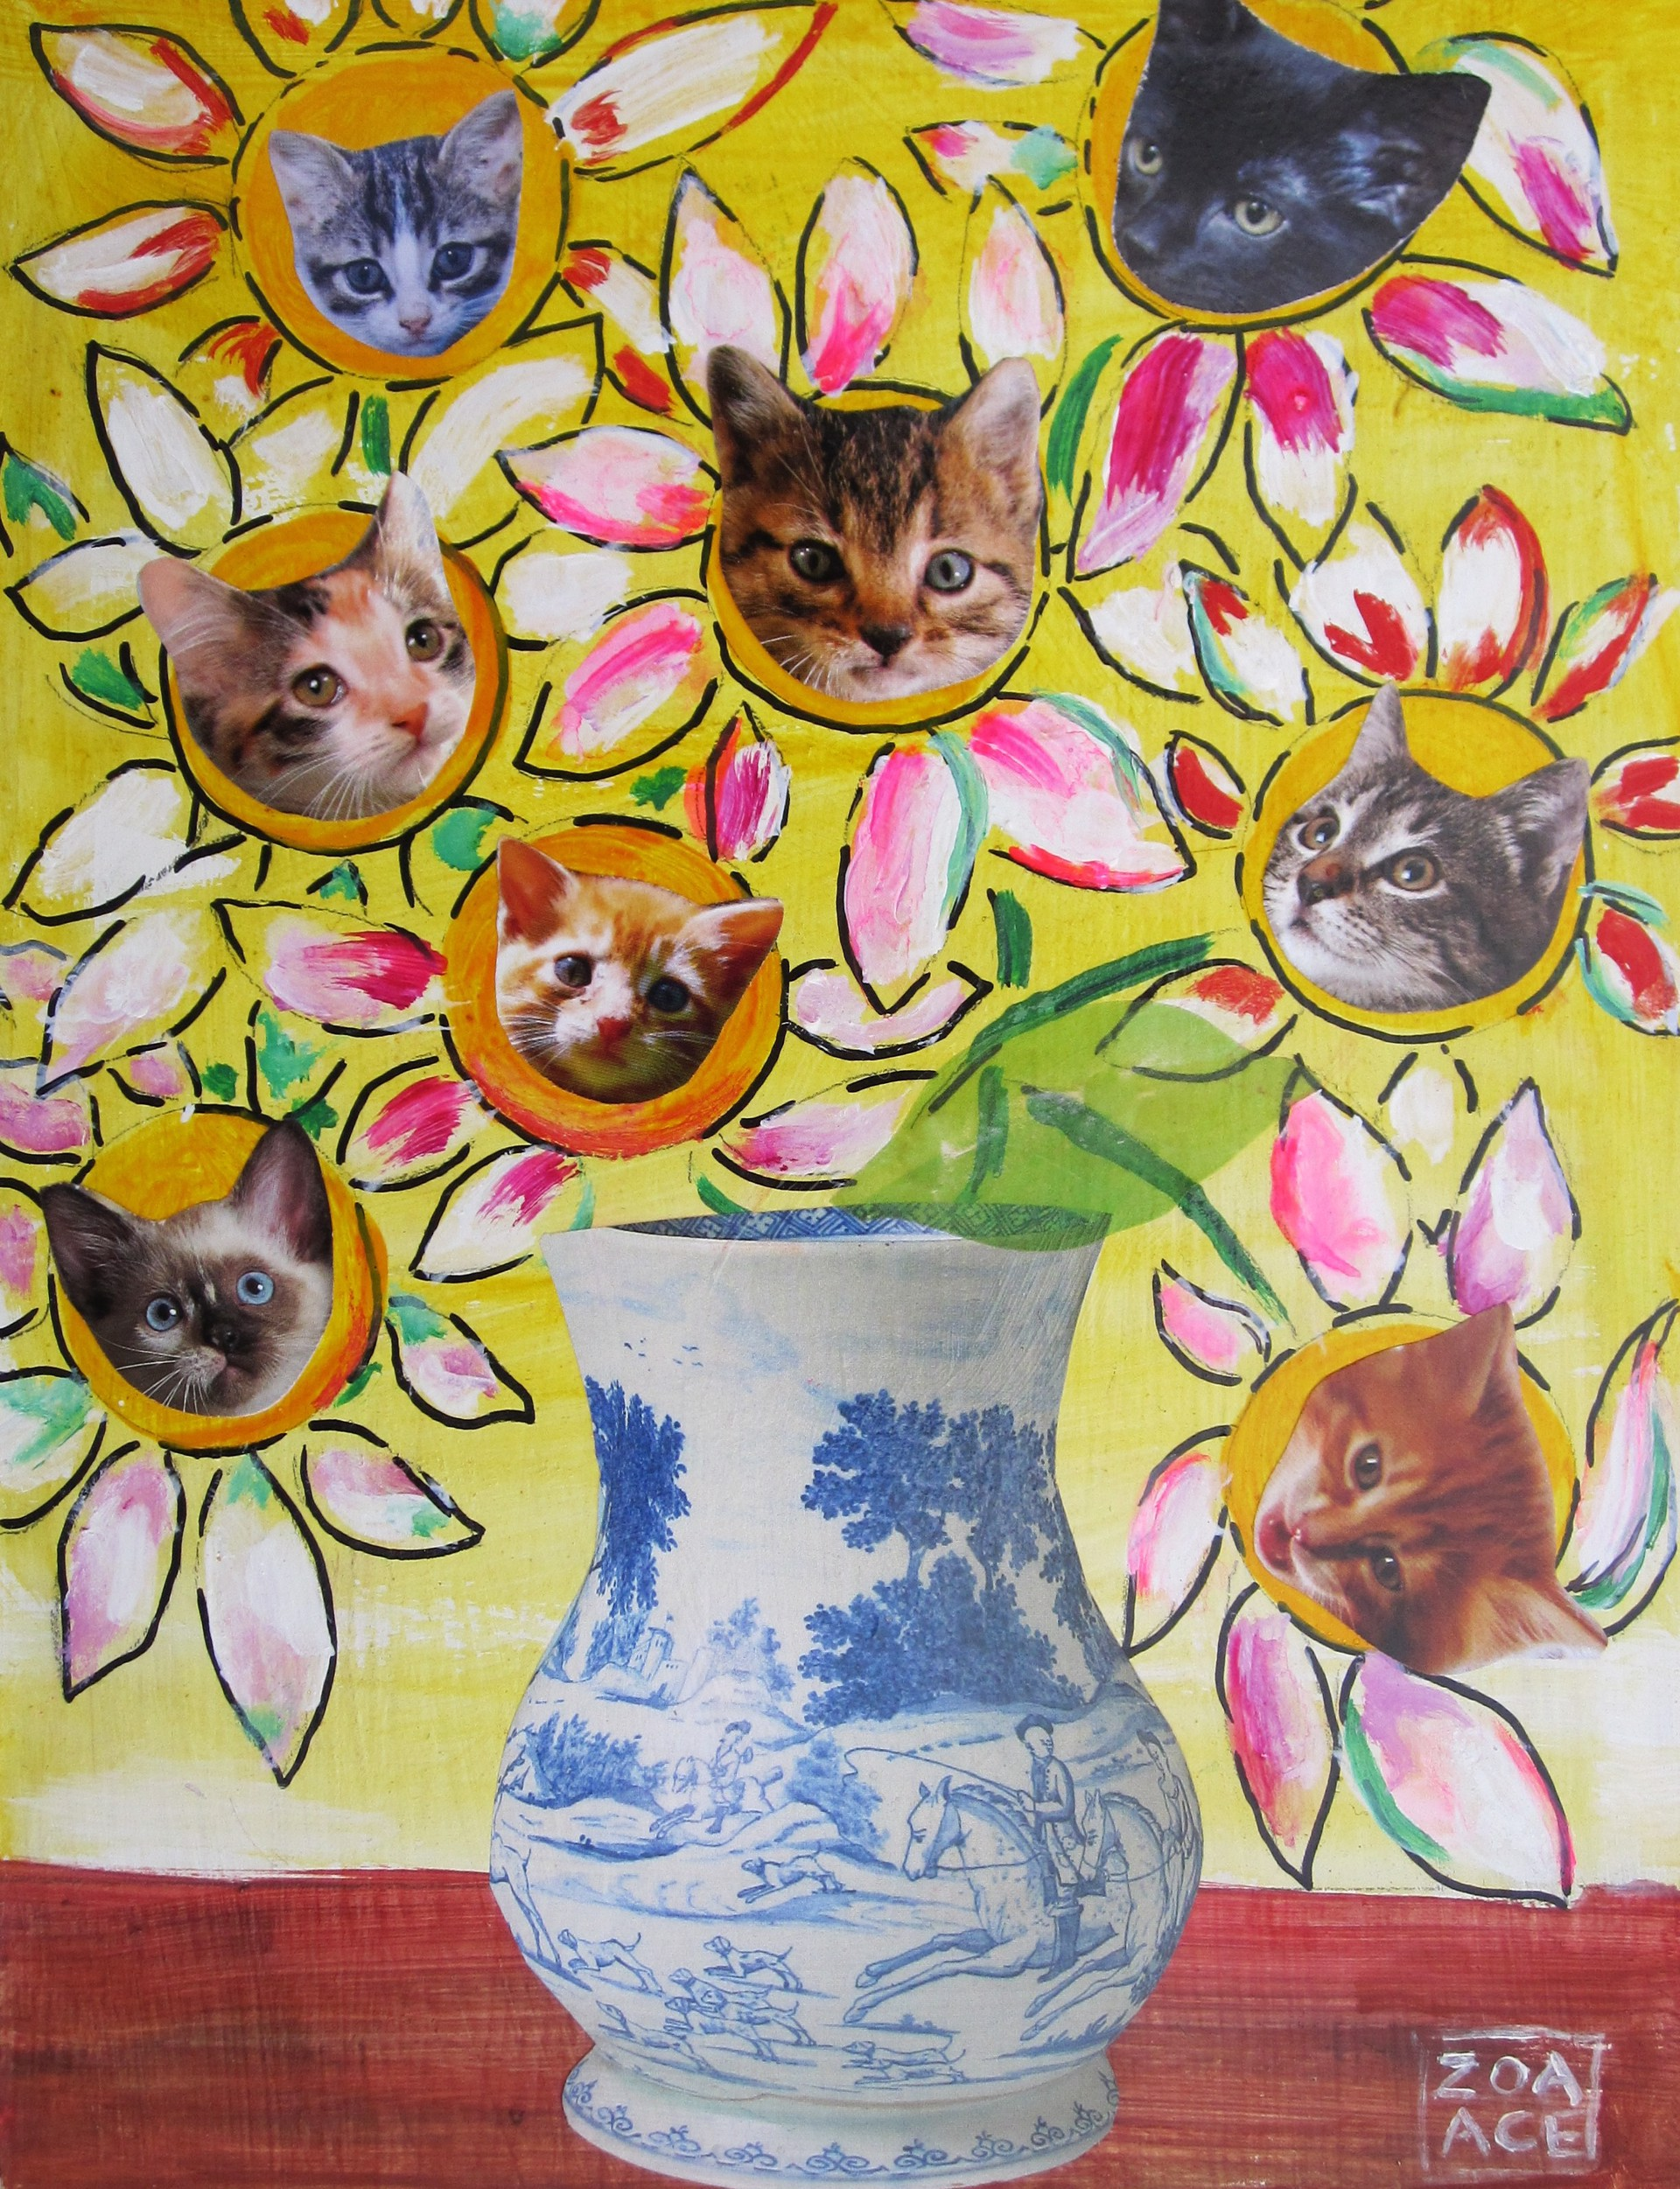 Bouquet of Kittens by Zoa Ace